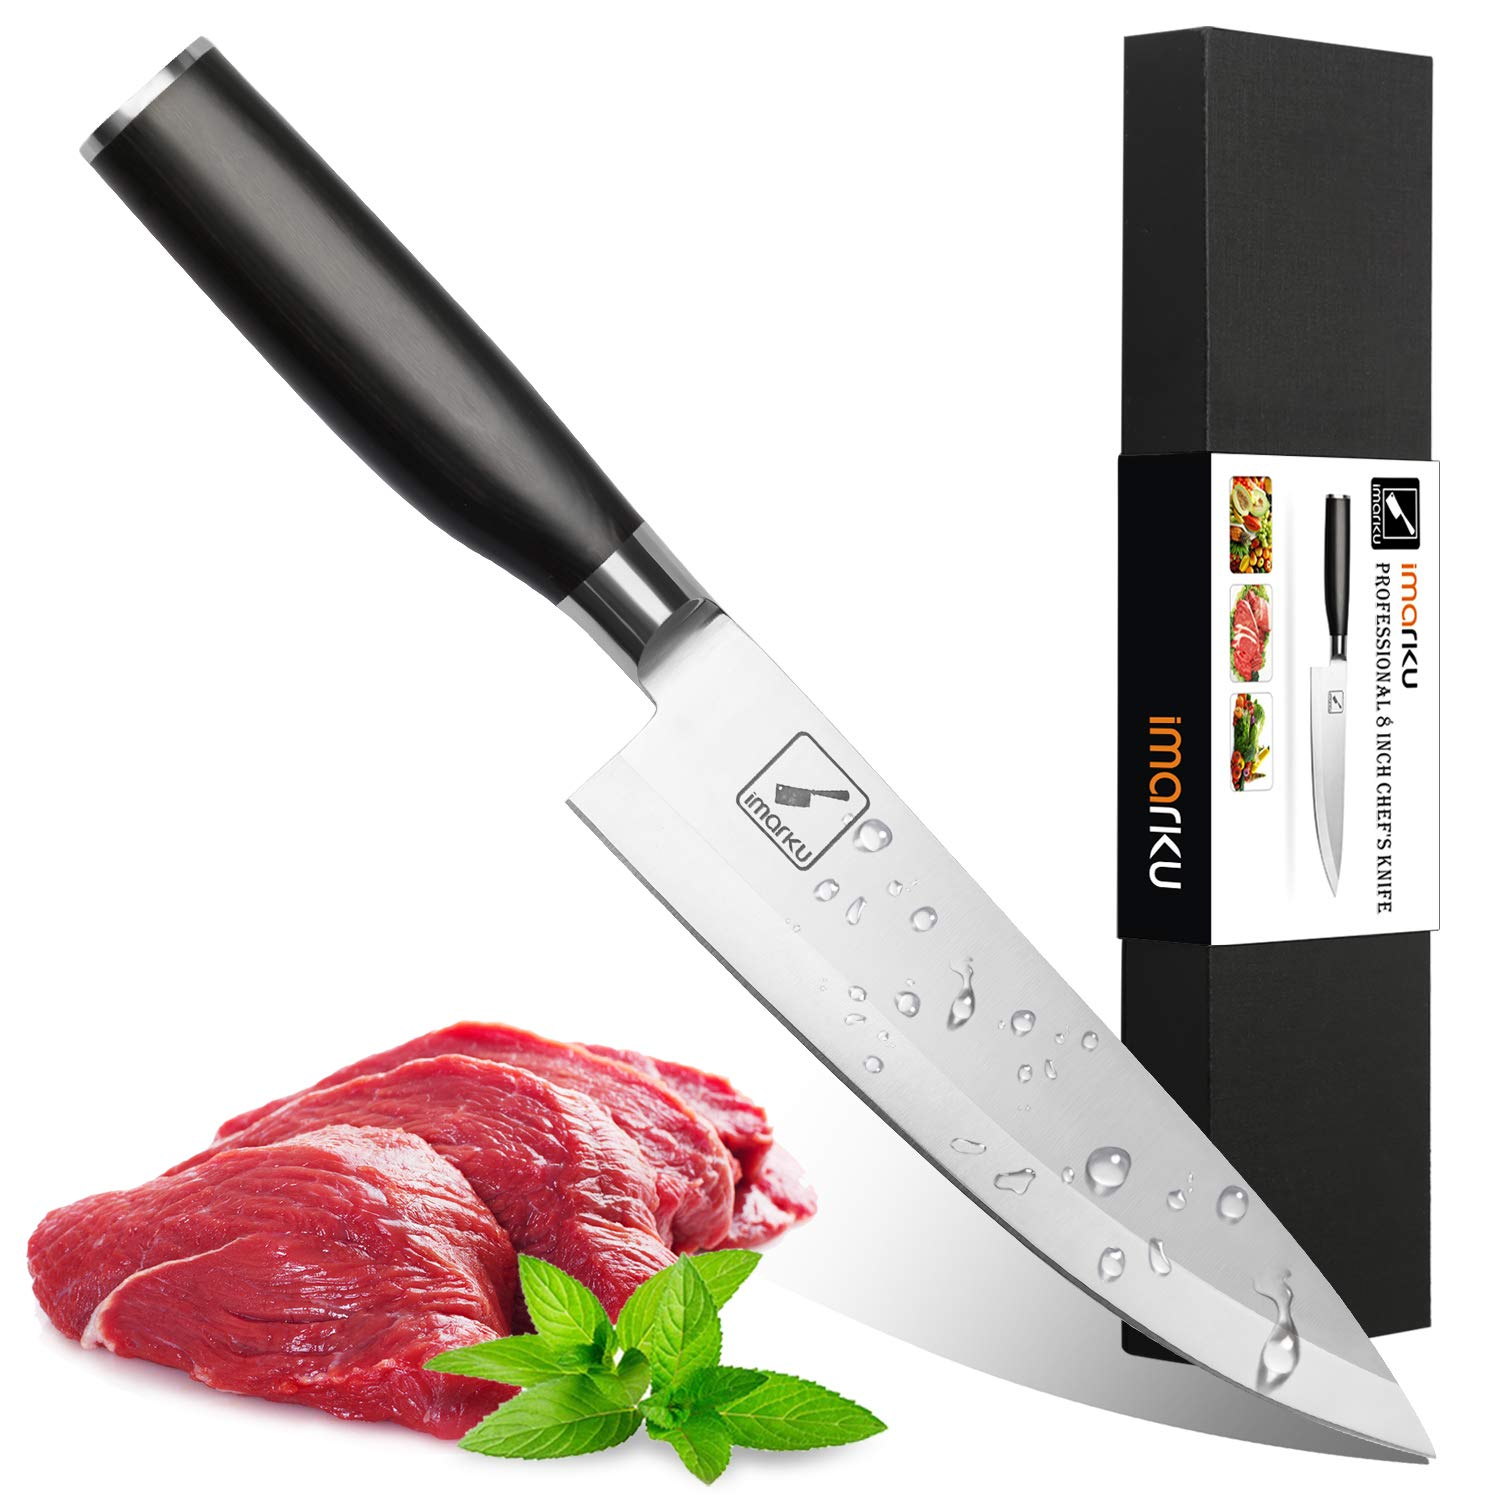 Imarku 8 Inch Pro Chef's Knife,German High Carbon Stainless Steel Kitchen Knife with Sharp Single Bevel Blade and Ergonomic Handle